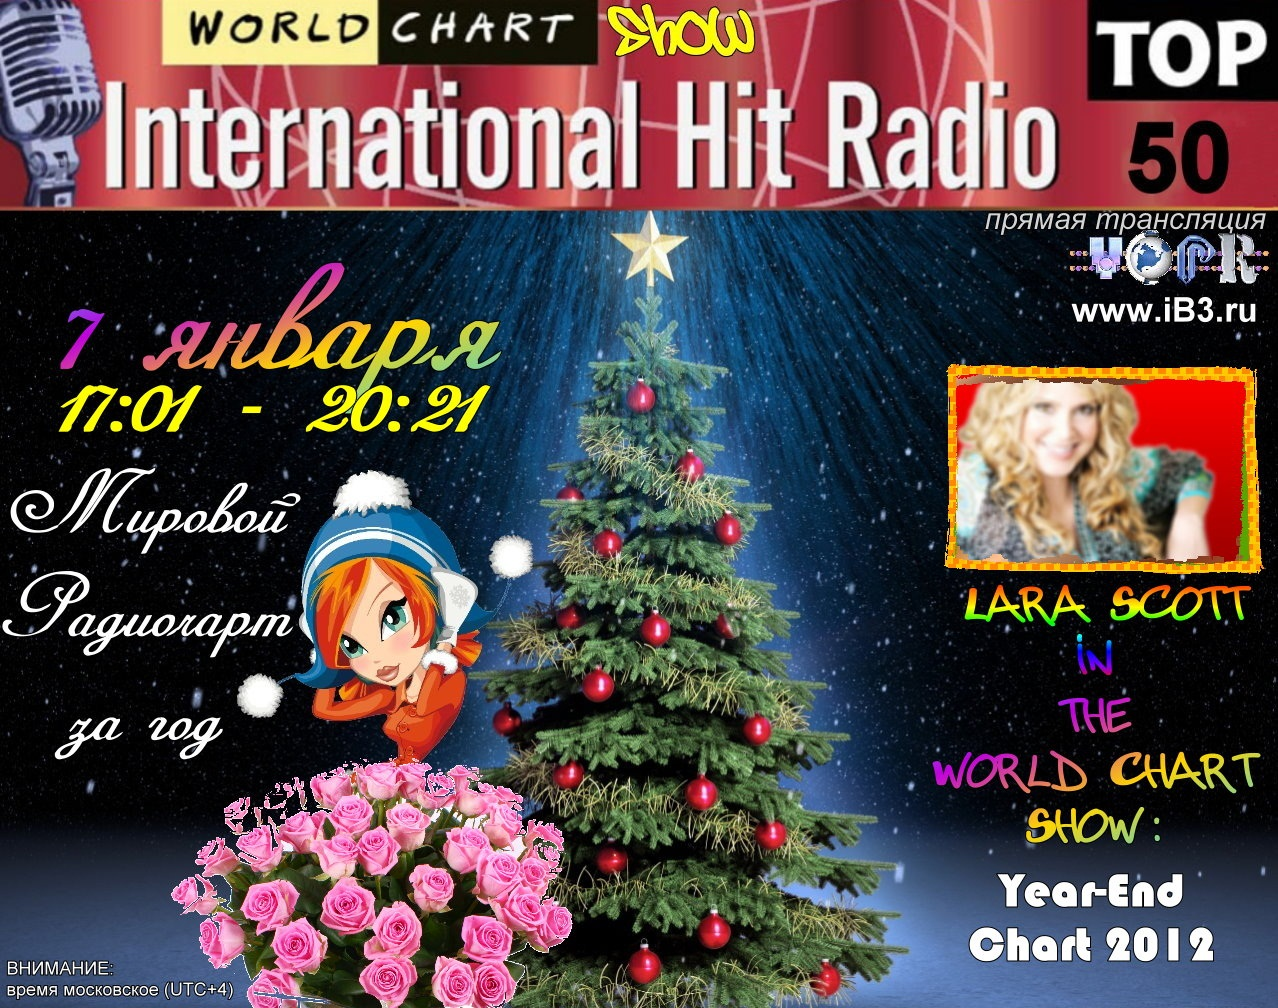 World Chart Show vs Lara Scott: Year-End Chart 2012